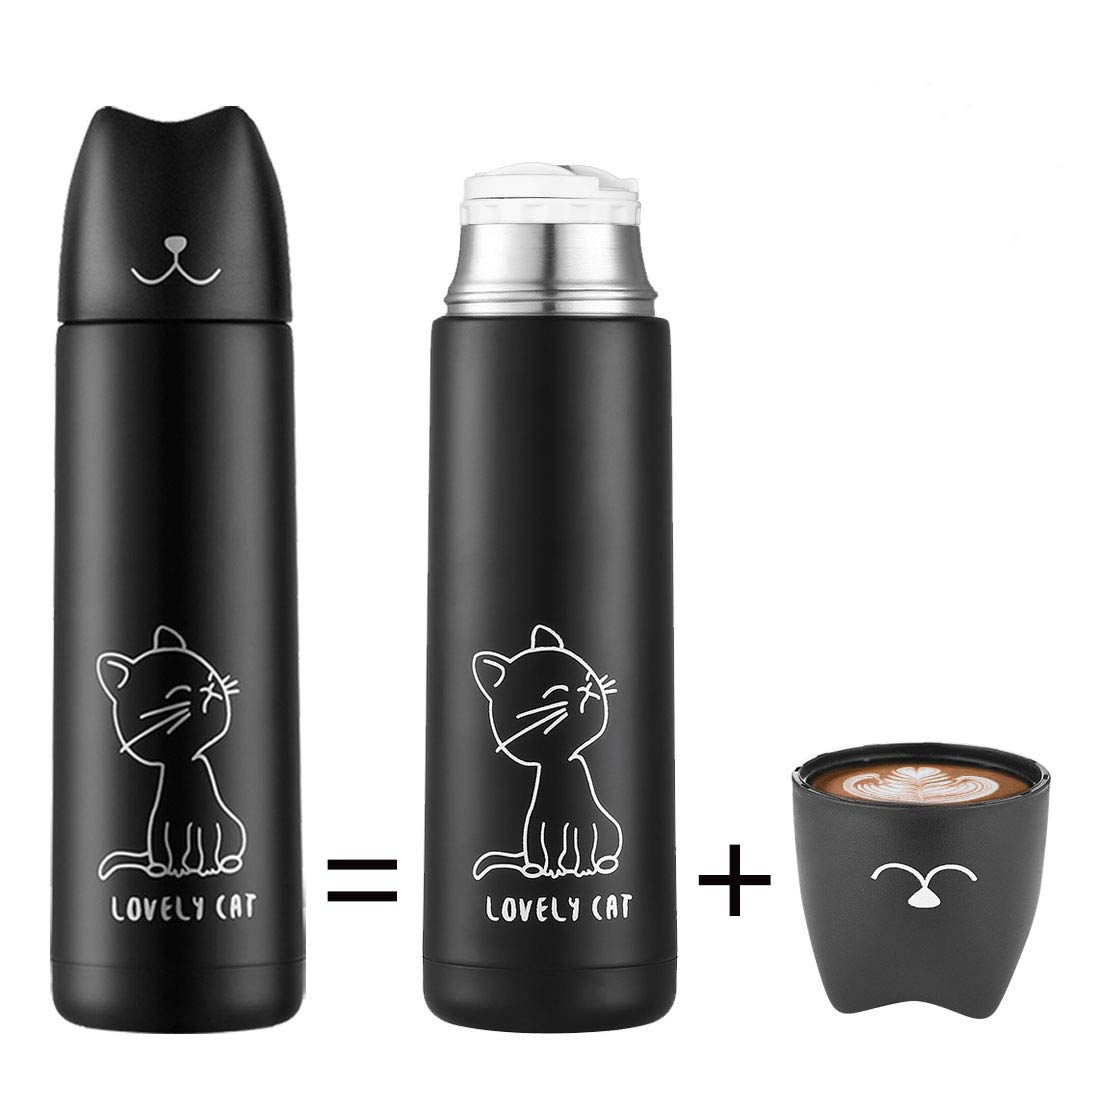 Cute Cat Thermoses Water Bottle - ONEISALL Cat Tumbler Stainless Steel Insulated Thermal Travel Coffee Mug for Kids Adult Cat Lover Gift, 17oz (Black)